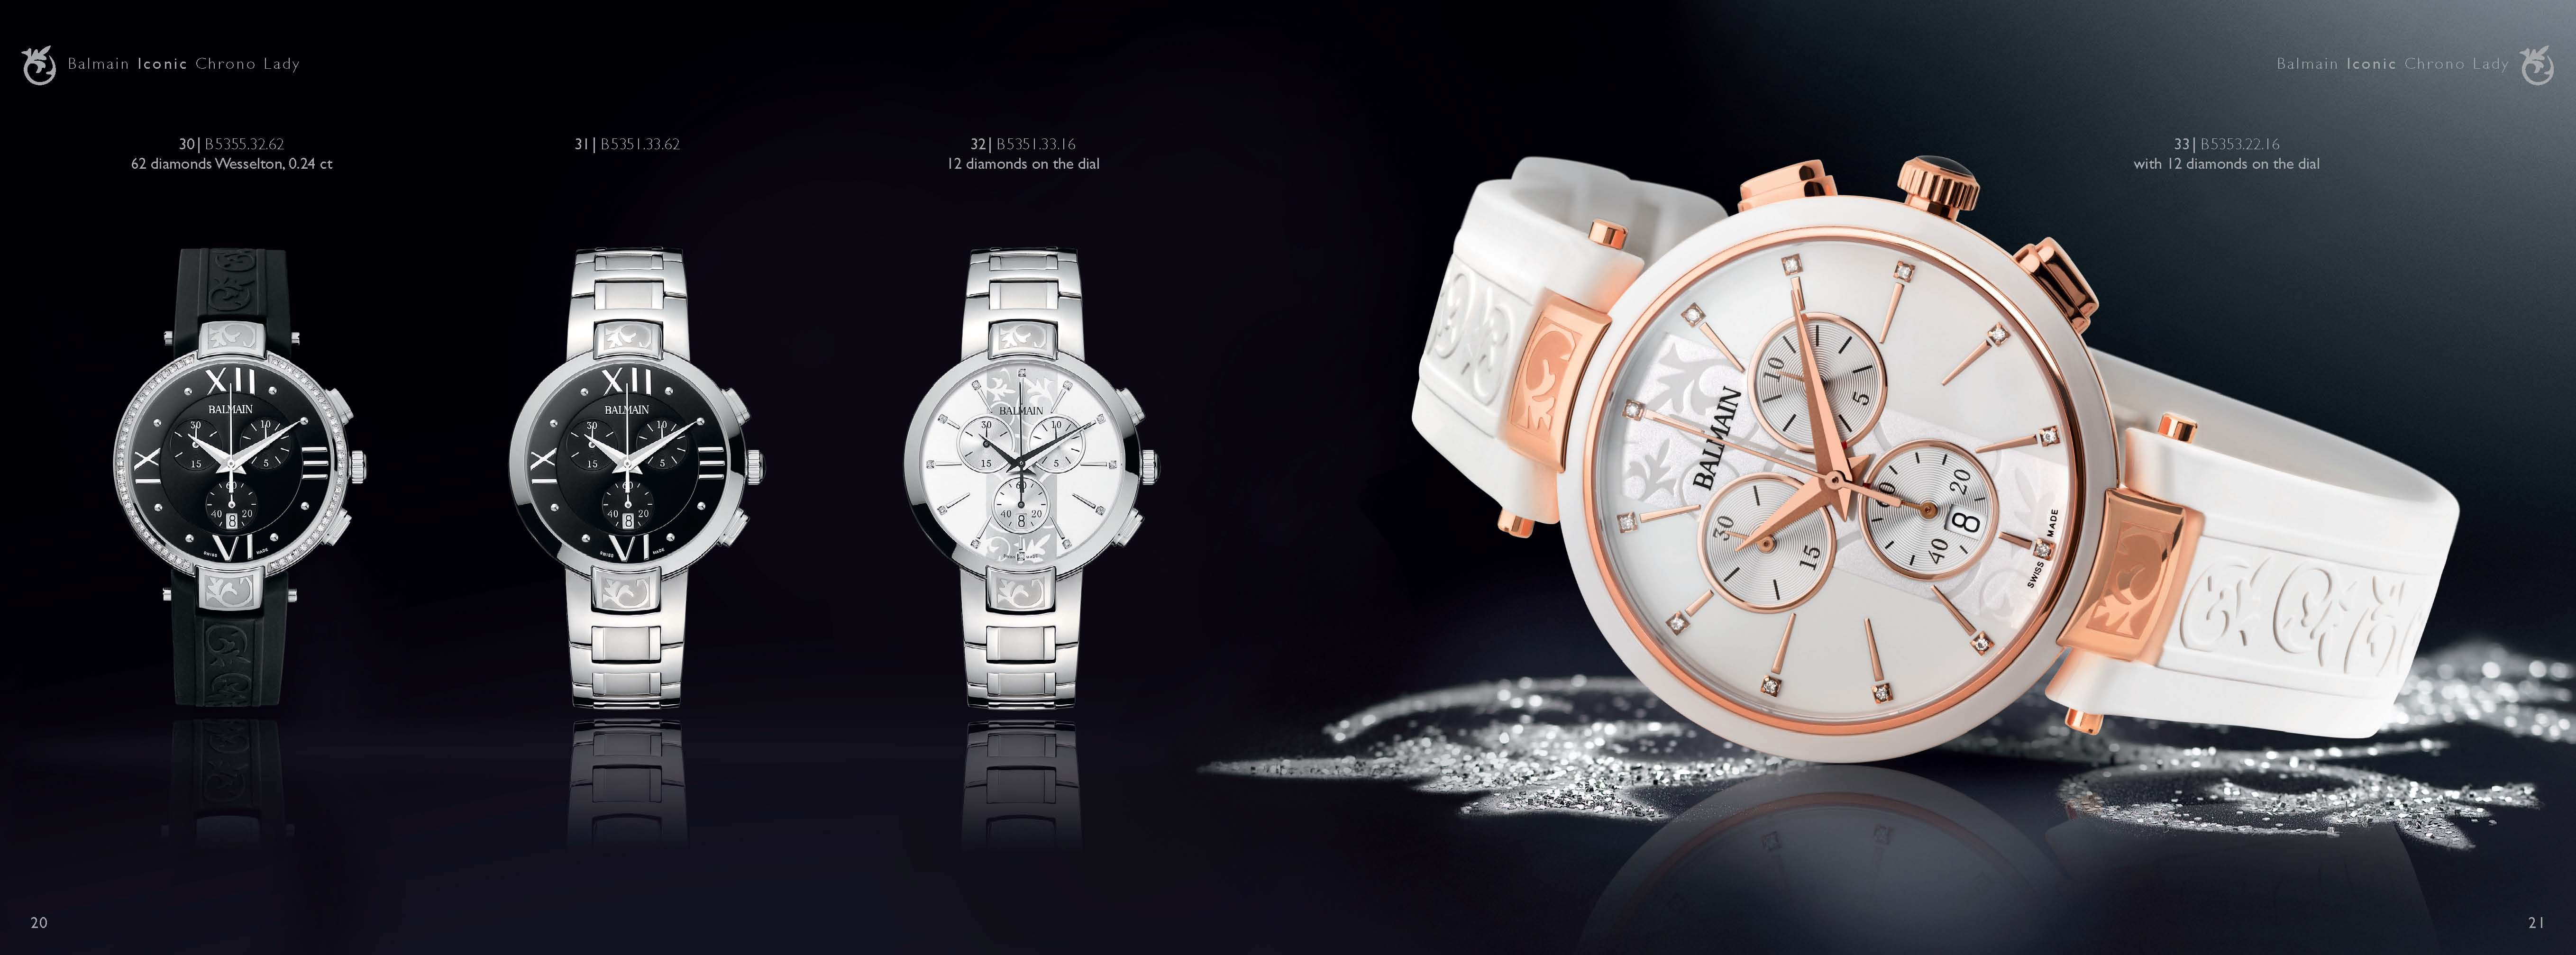 BALMAIN-Iconic-Chrono-Lady